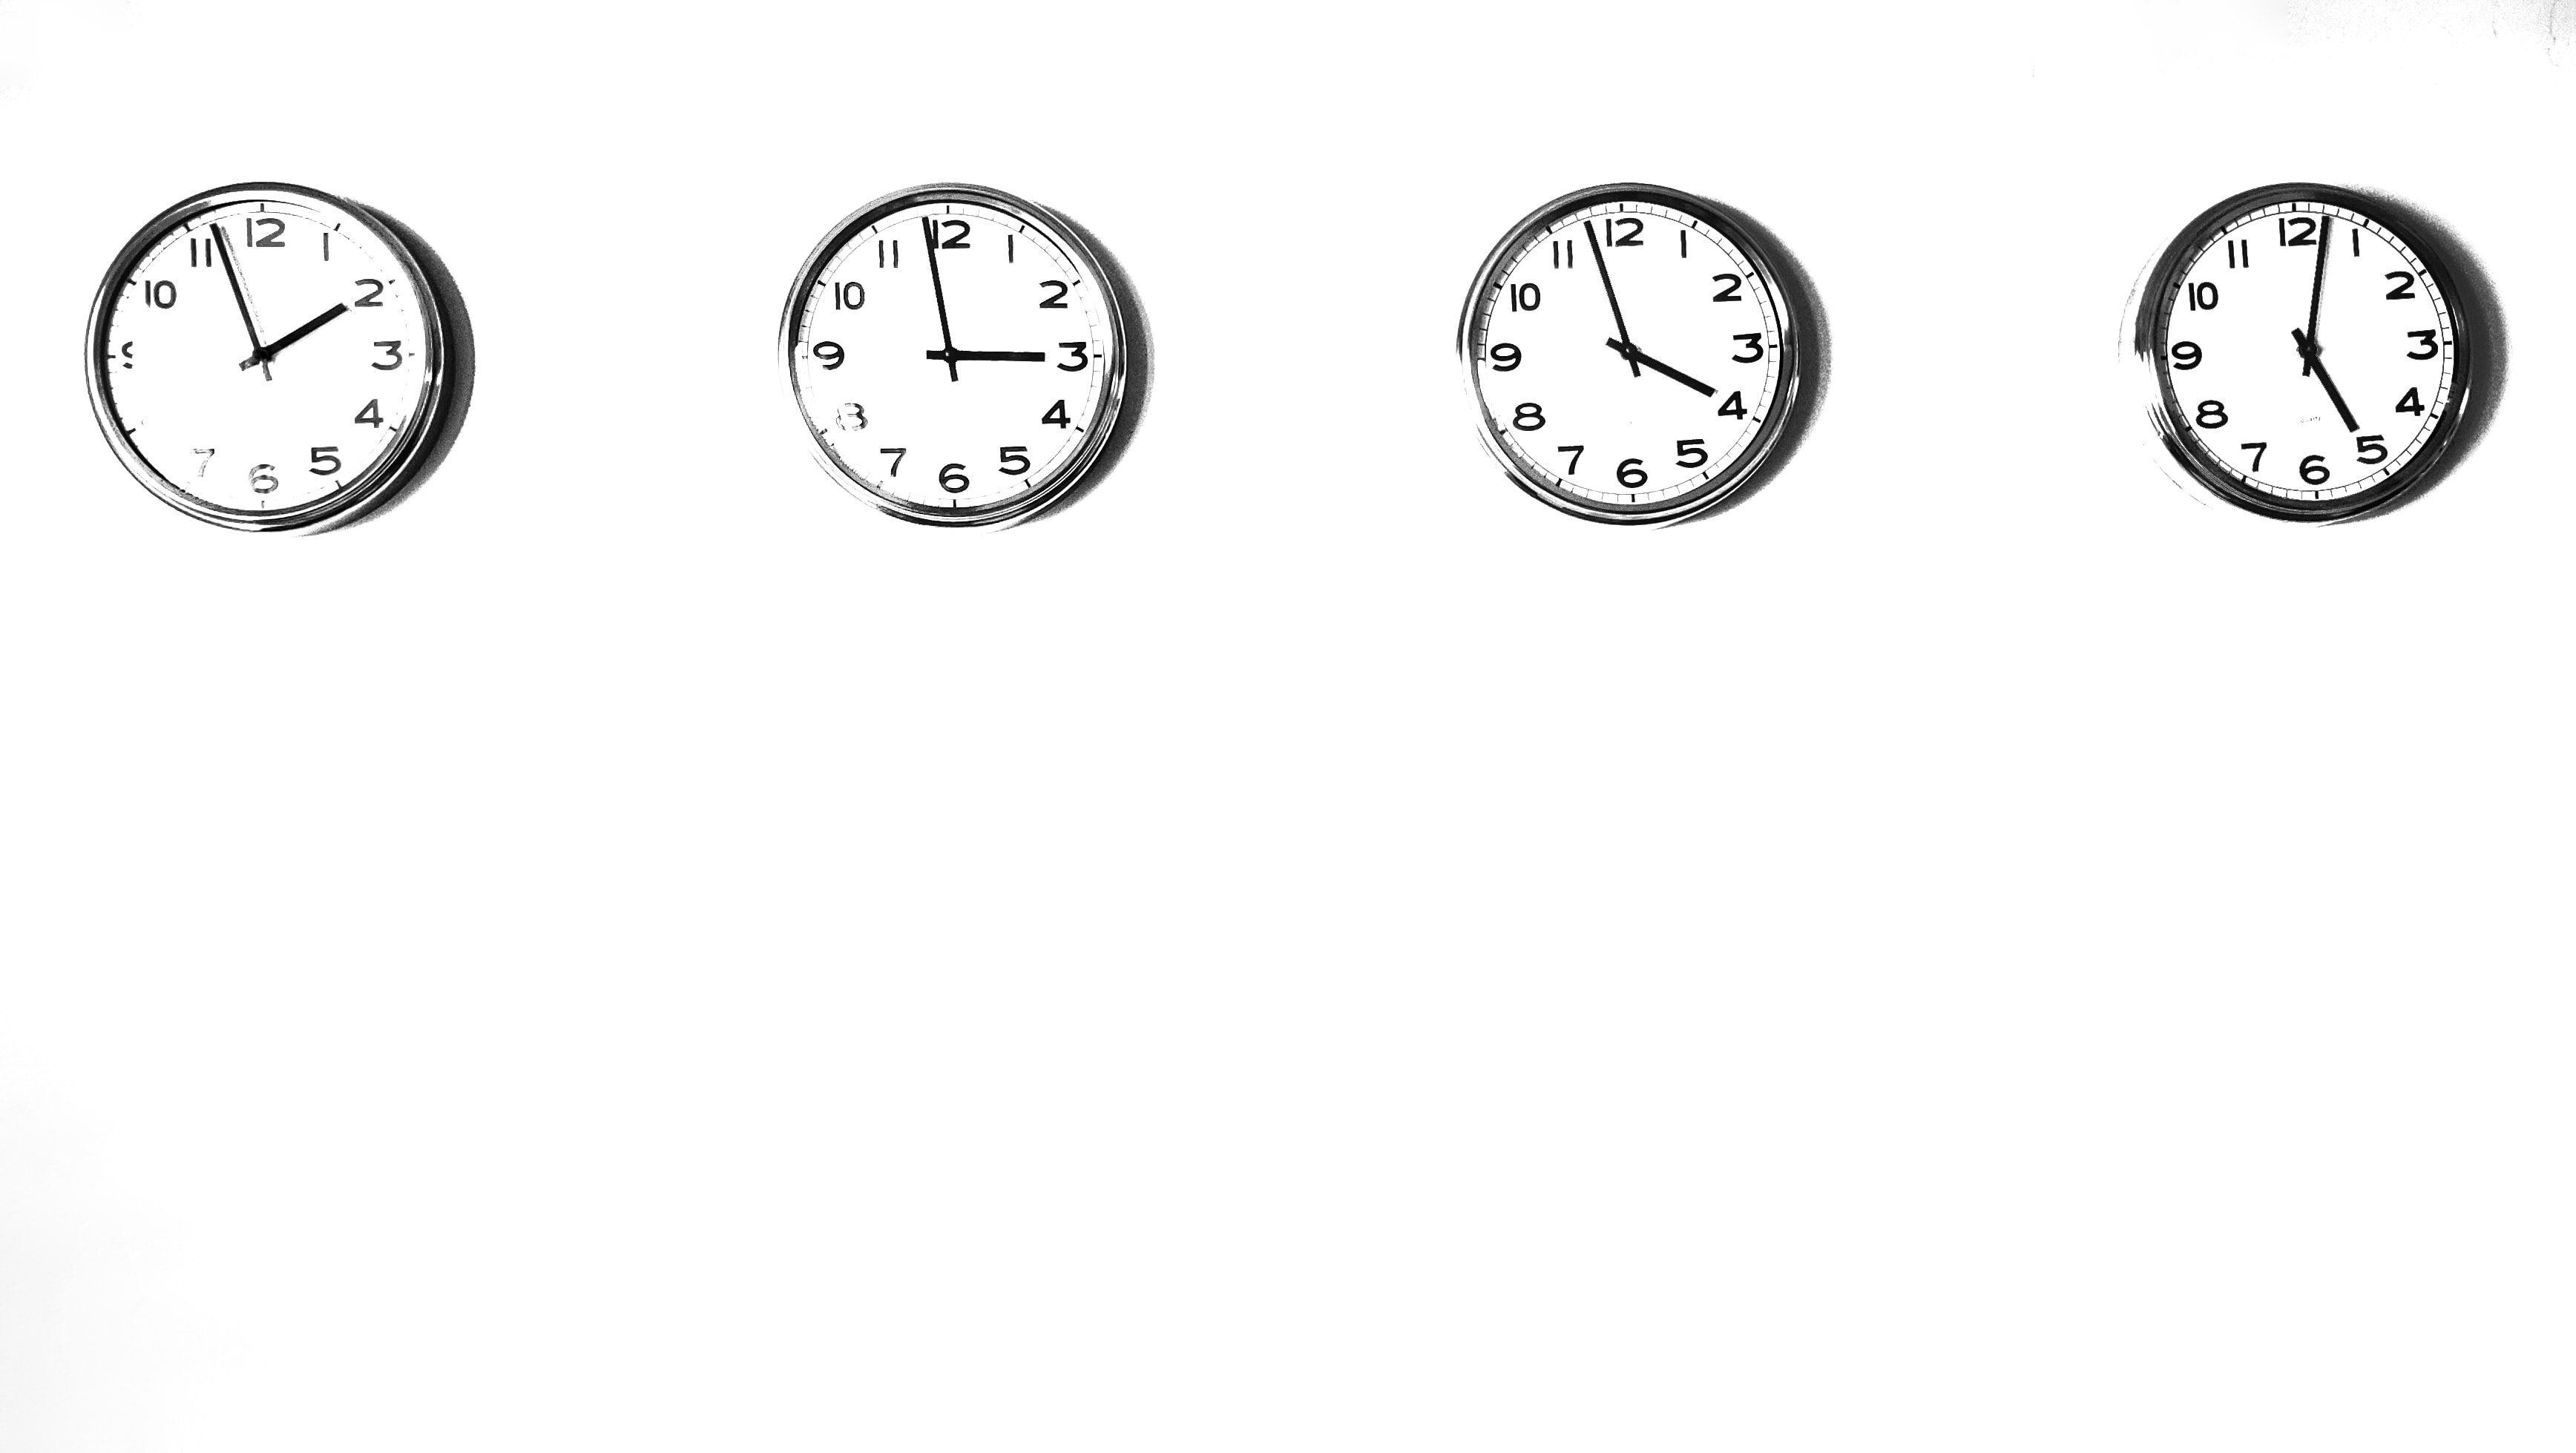 Four clocks showing different times.